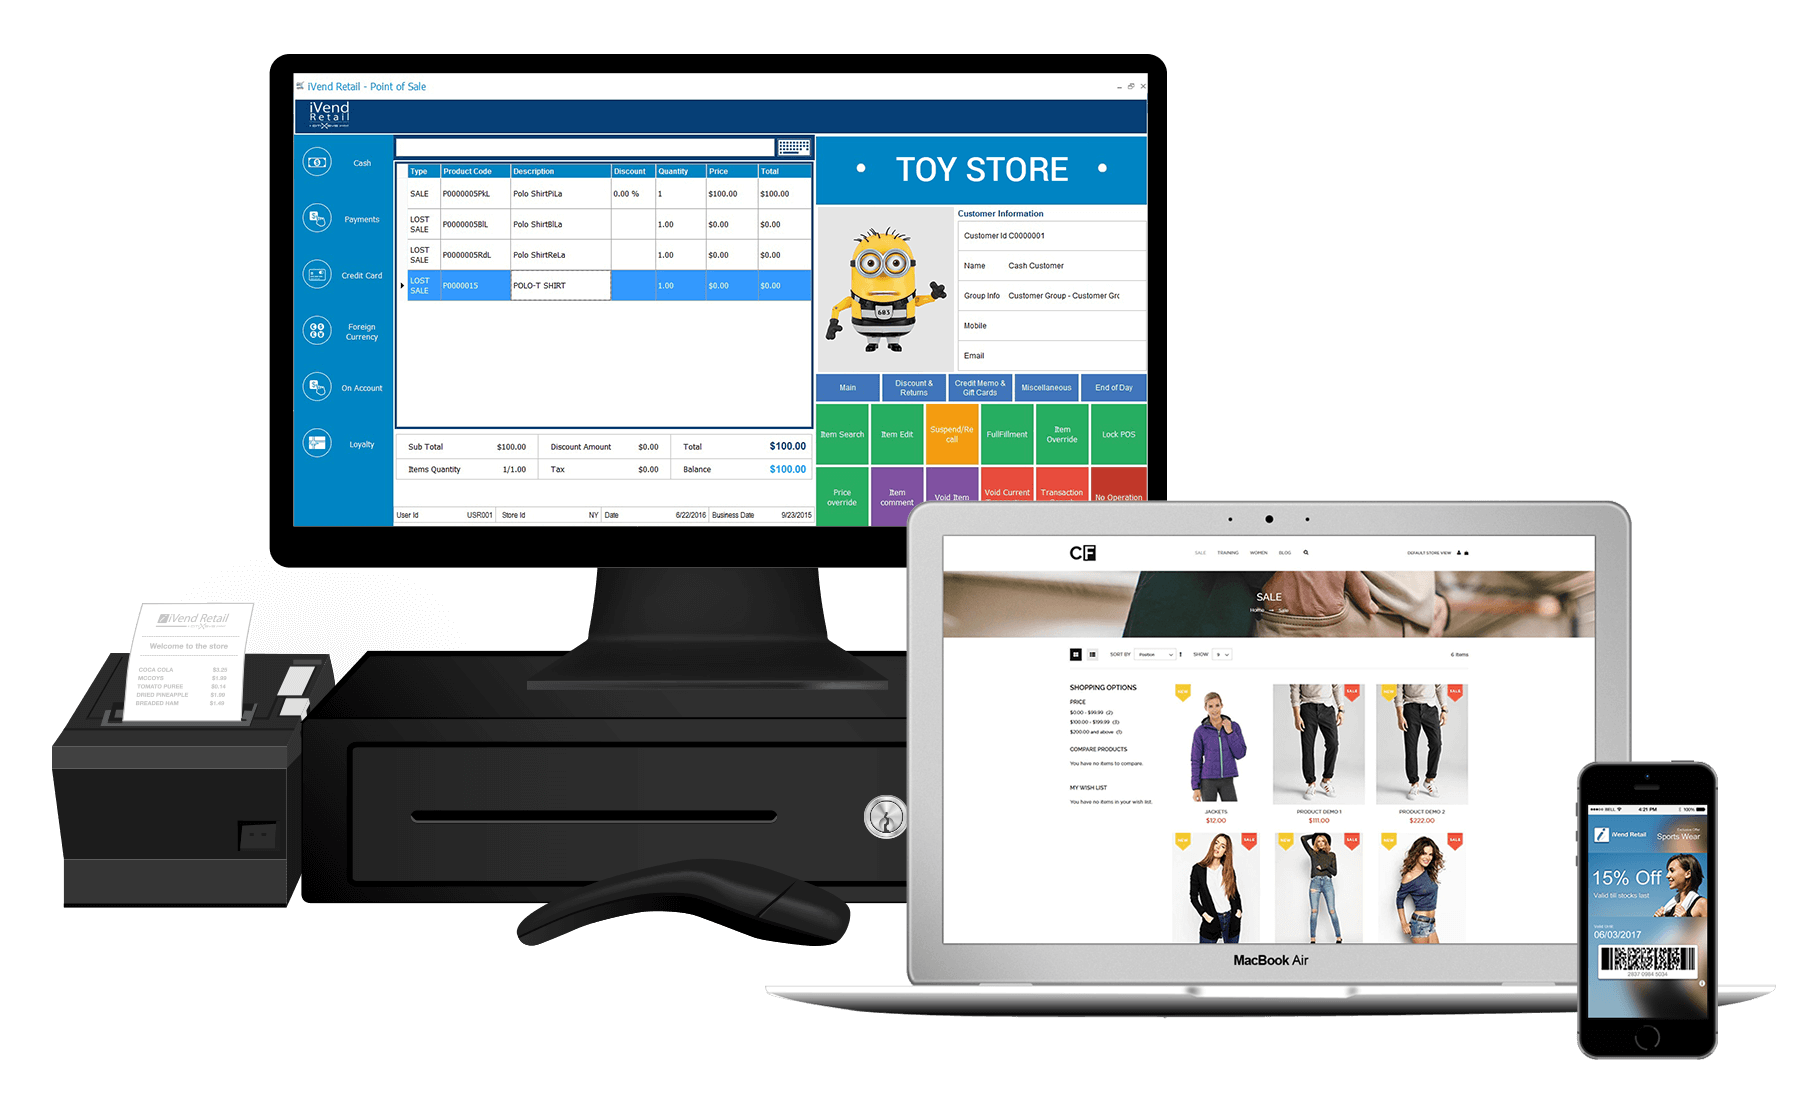 iVend-toy-suite-Vertical-POS